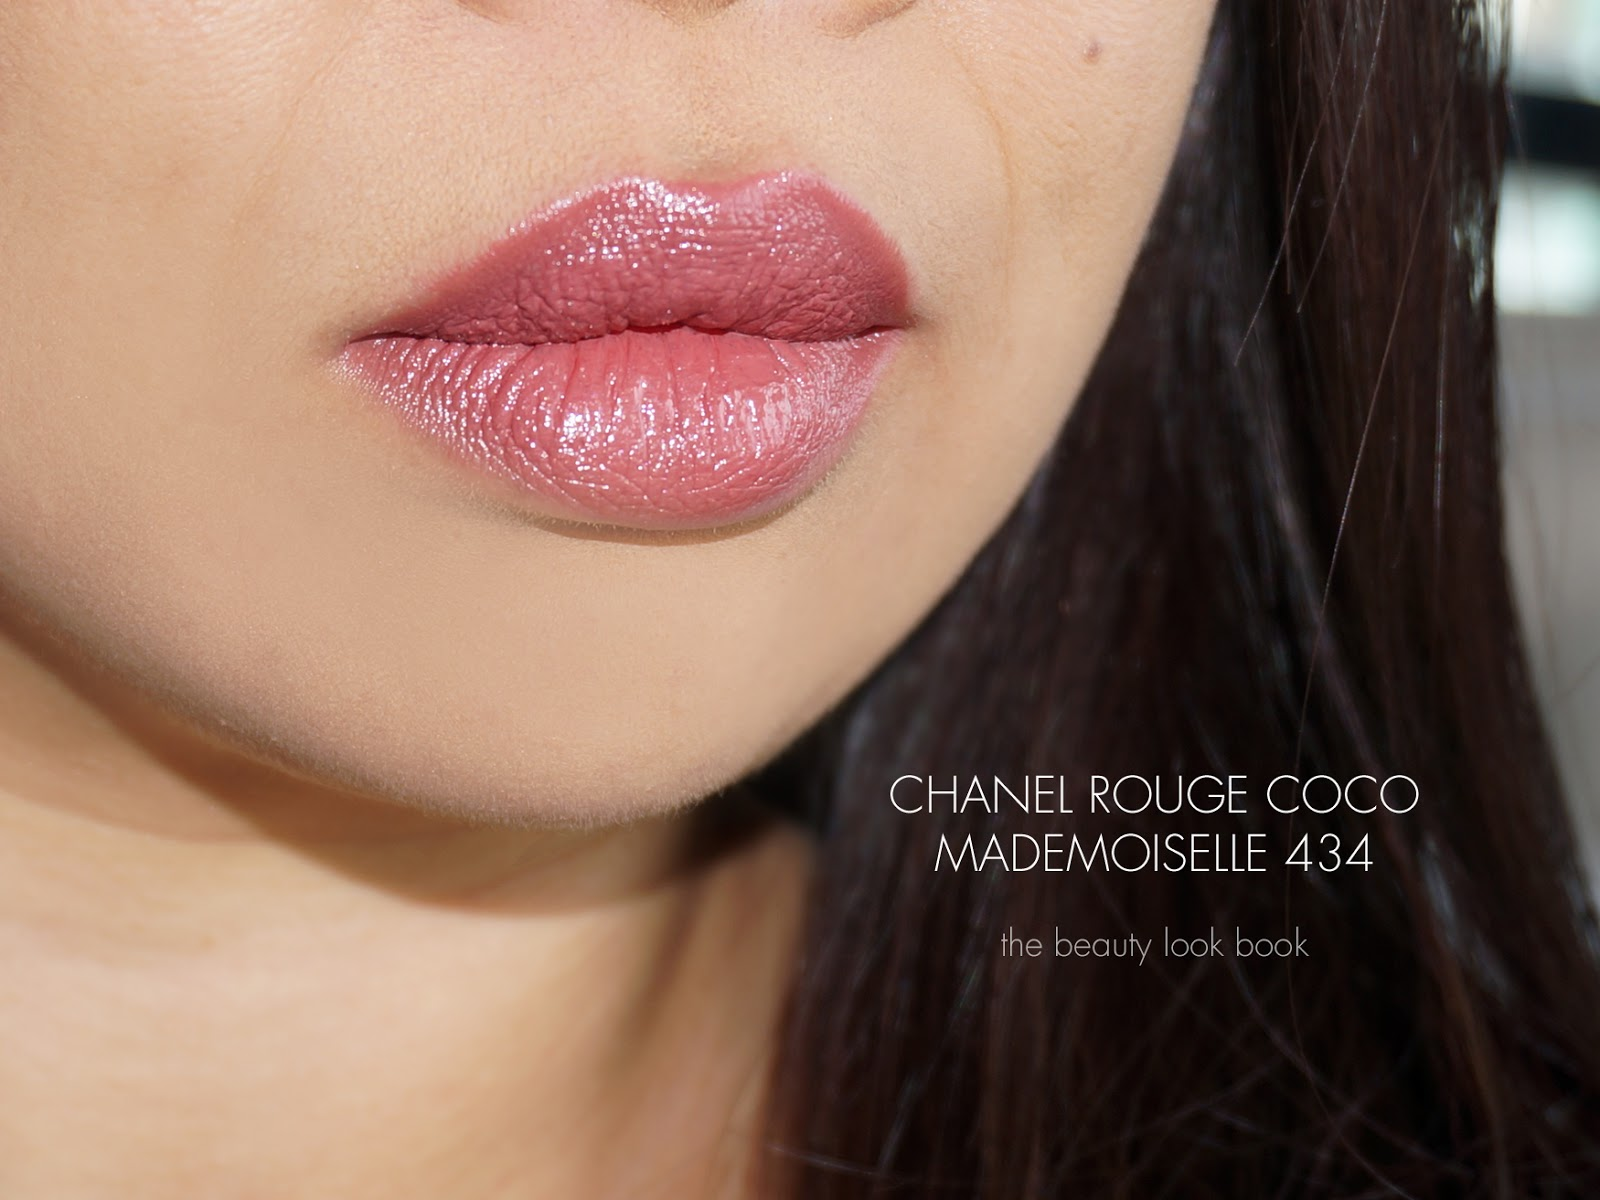 chanel rouge coco ultra hydrating lip colour the beauty look book. Black Bedroom Furniture Sets. Home Design Ideas